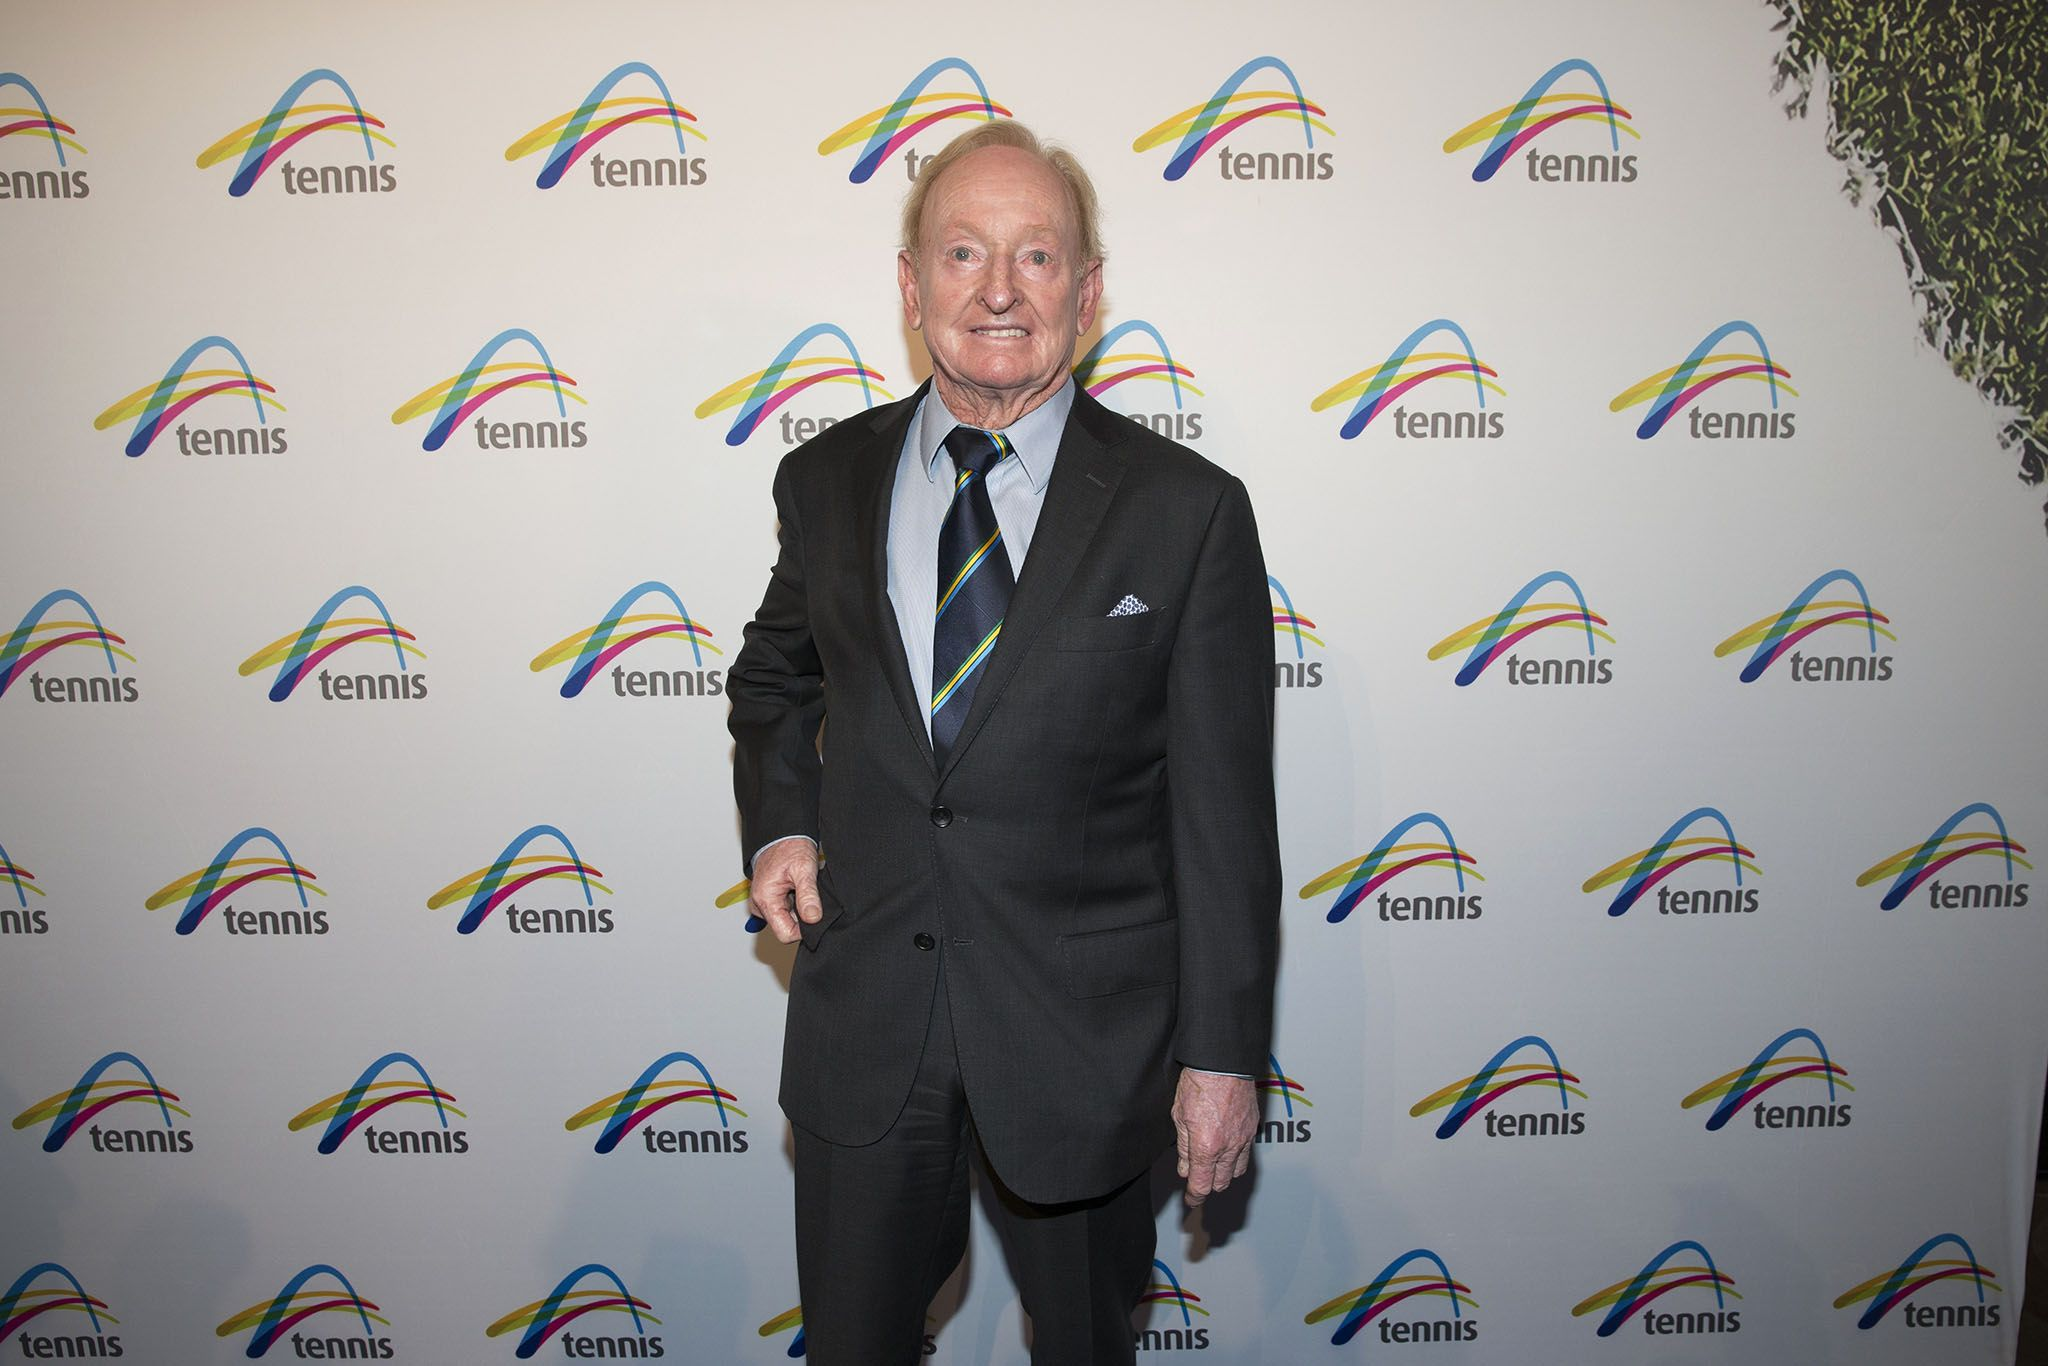 GOAT Rod Laver was one of the Legends of the game who joined in